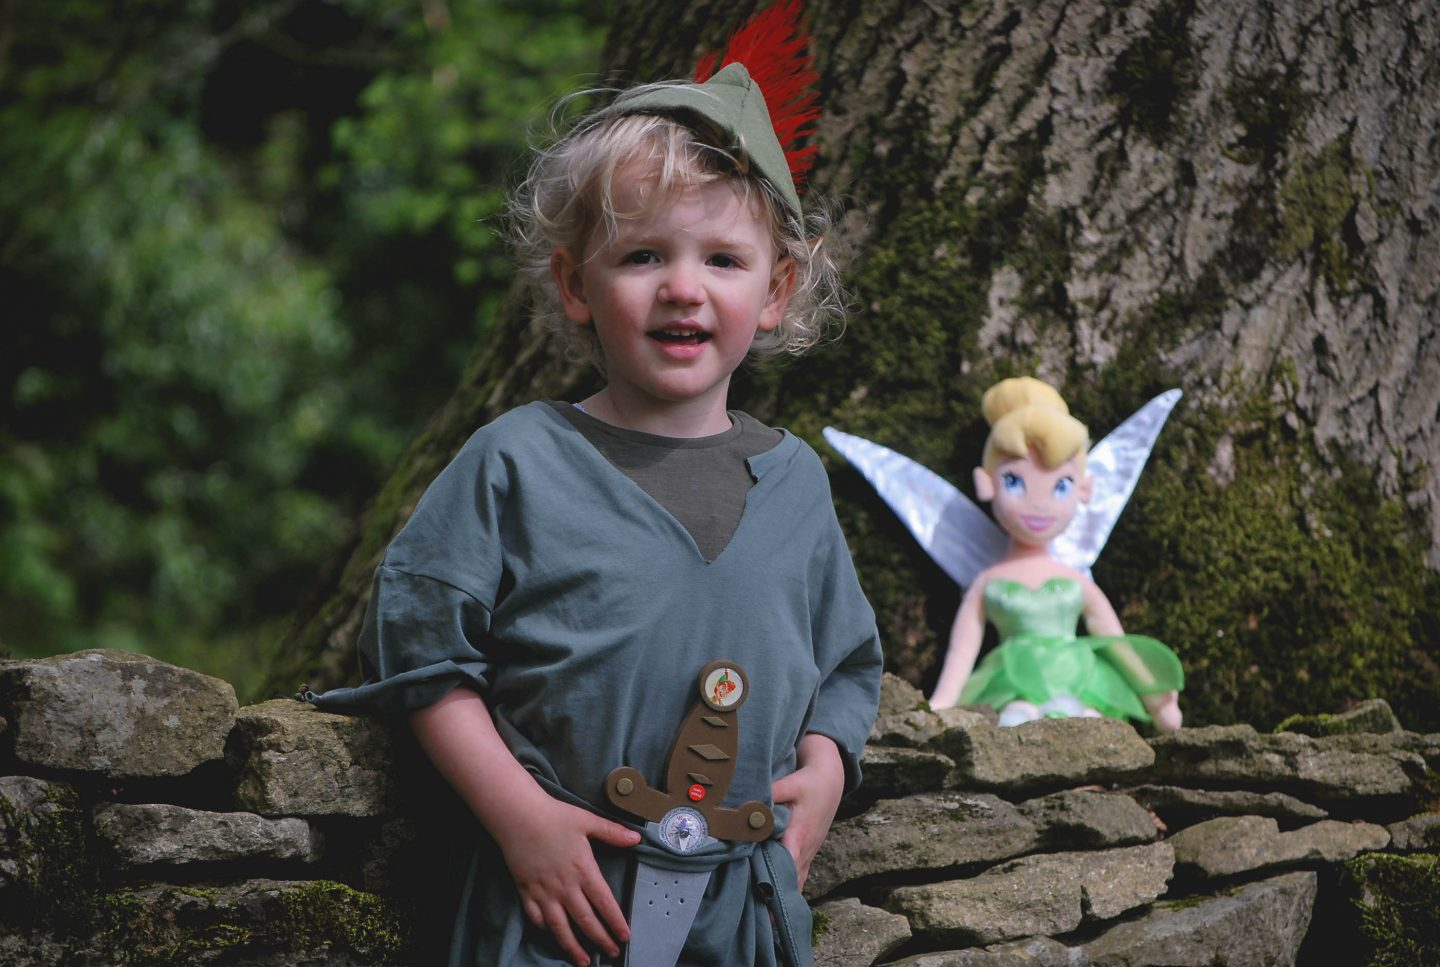 Dressed as Peter Pan with Tinkerbell